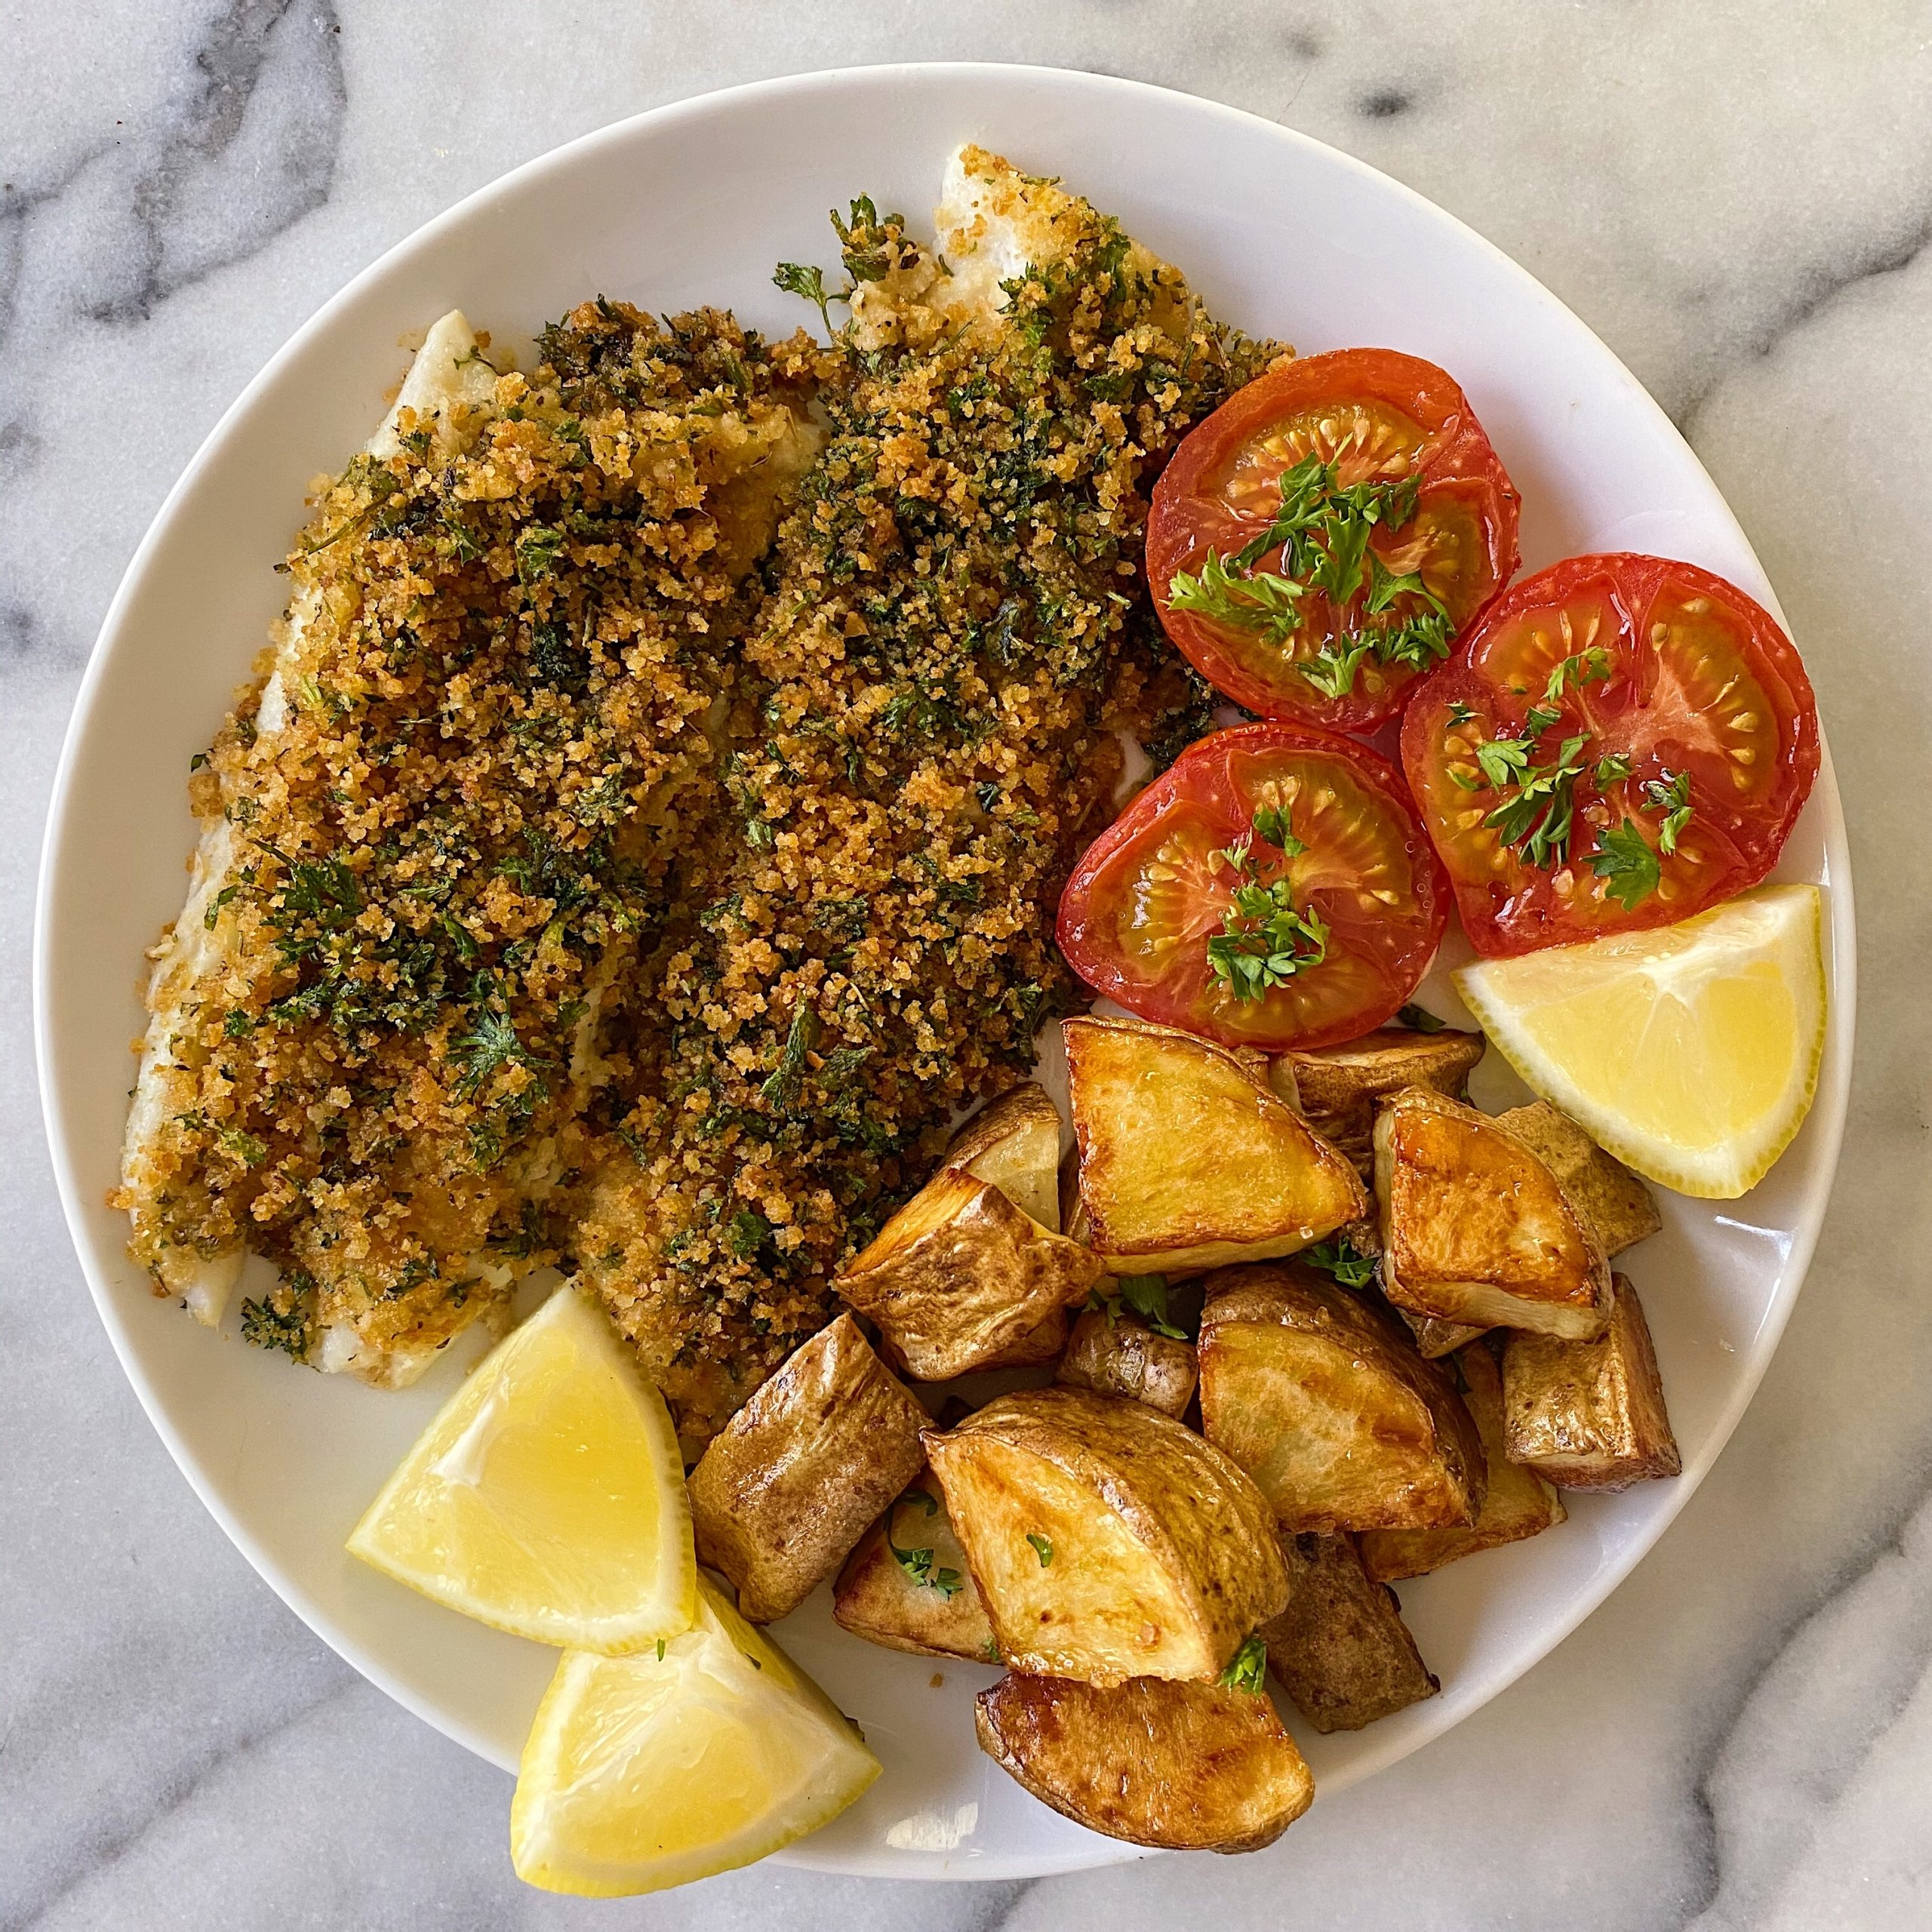 Baked Fish lemon herbed breadcrumbs gluten free #glutenfreerecipes www.healthygffamily.com